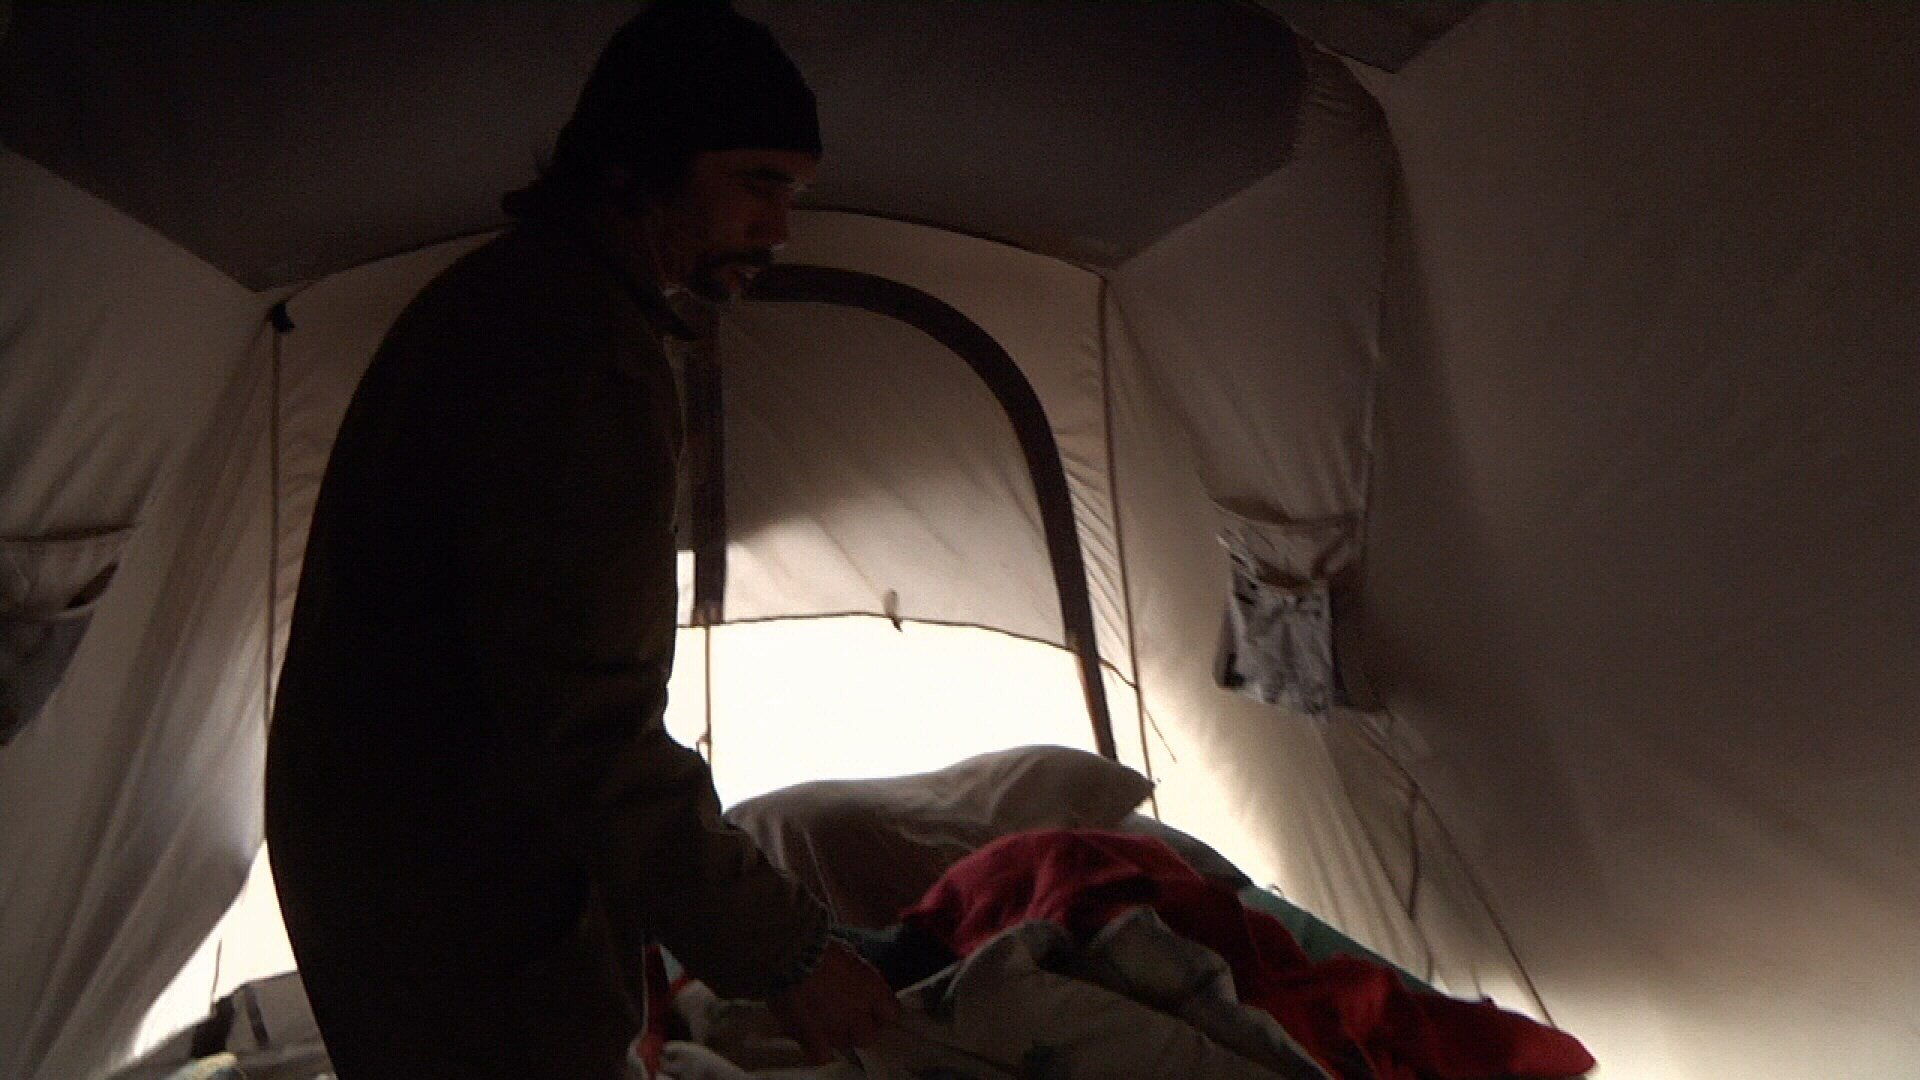 Some displaced storm victims and volunteers helping them are still living in tents and prepare for temperatures to drop.